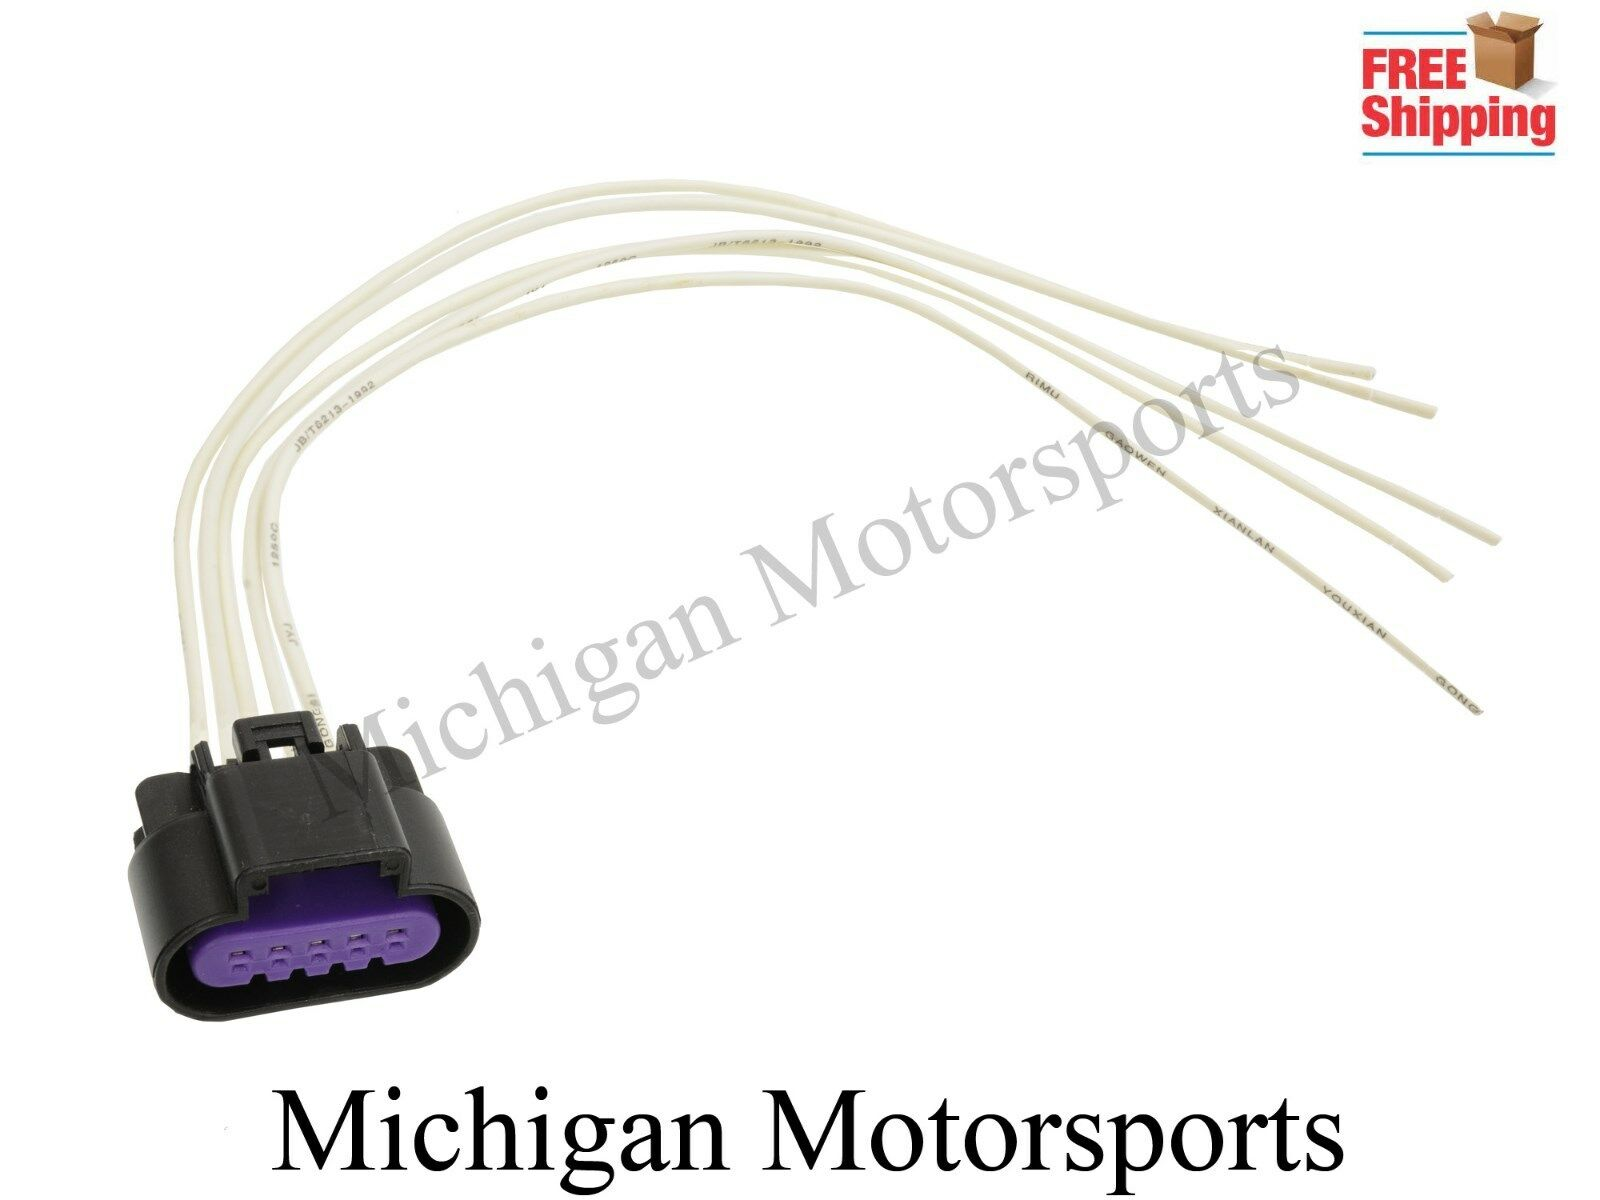 brake tail light repair wire harness gm circuit board repair you re almost done brake tail light repair wire harness